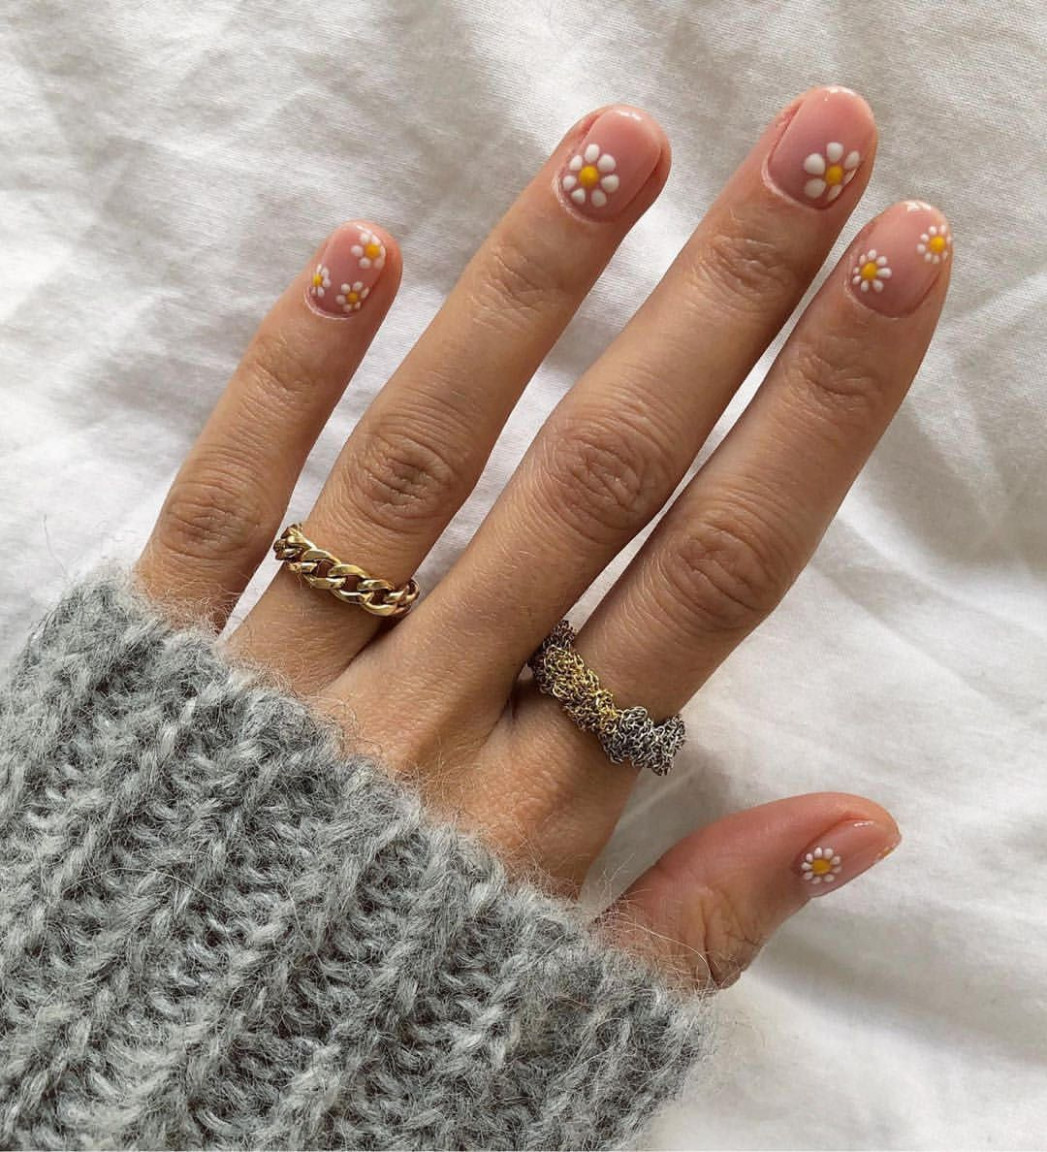 The March 10 nail trends to bookmark for your next mani — link